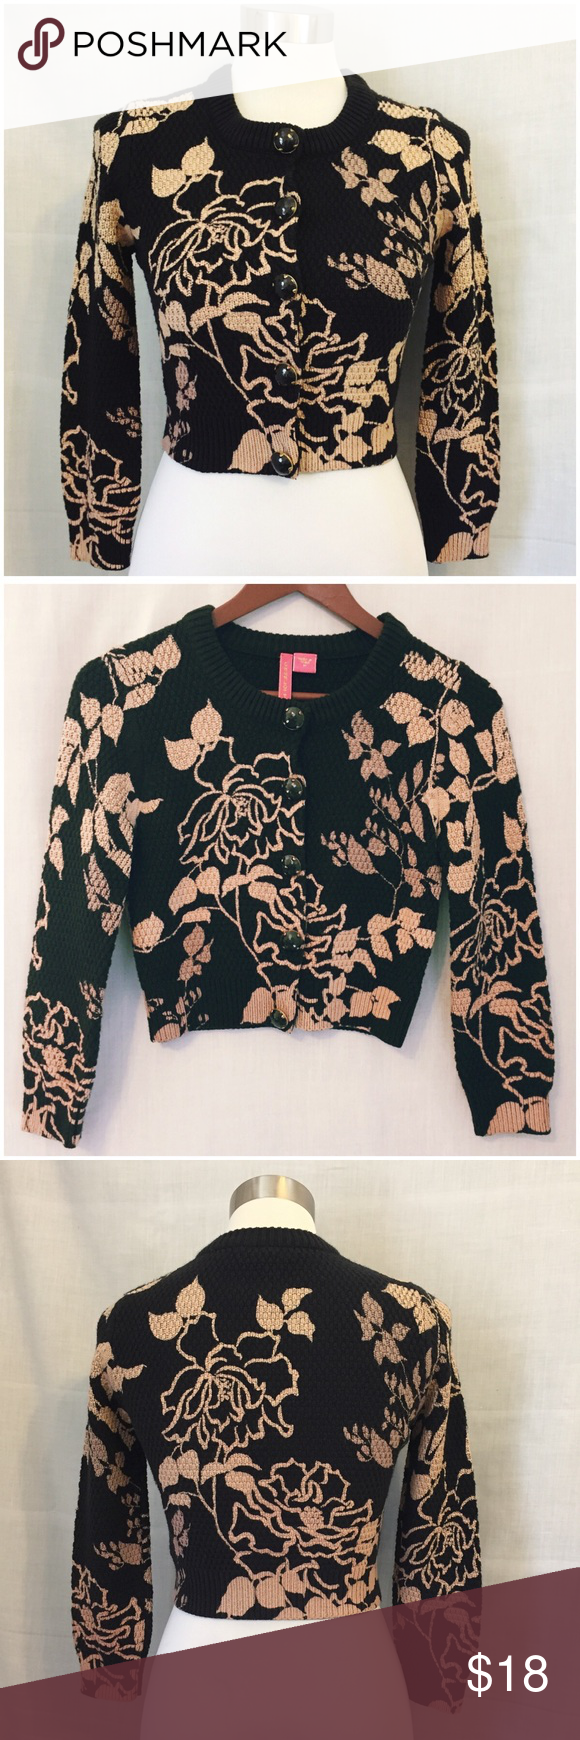 """Charlotte Tarantola Black Floral Cropped Cardigan Charlotte Tarantola 3/4 Sleeve Black Tan Floral Cropped Cardigan Sweater  • Medium (runs small, will fit a s/m) • 55% cotton 45% acrylic • Black knit cropped cardigan tan & pink floral print • Closes by five snaps with jeweled buttons • Ribbed hem, collar, and cuffs • 13.5"""" shoulders • 16.5"""" bust • 17"""" length  • 13"""" inseam • Measurements taken with garment flat gently worn, good pre-loved condition, no imperfections Charlotte Tarantola…"""